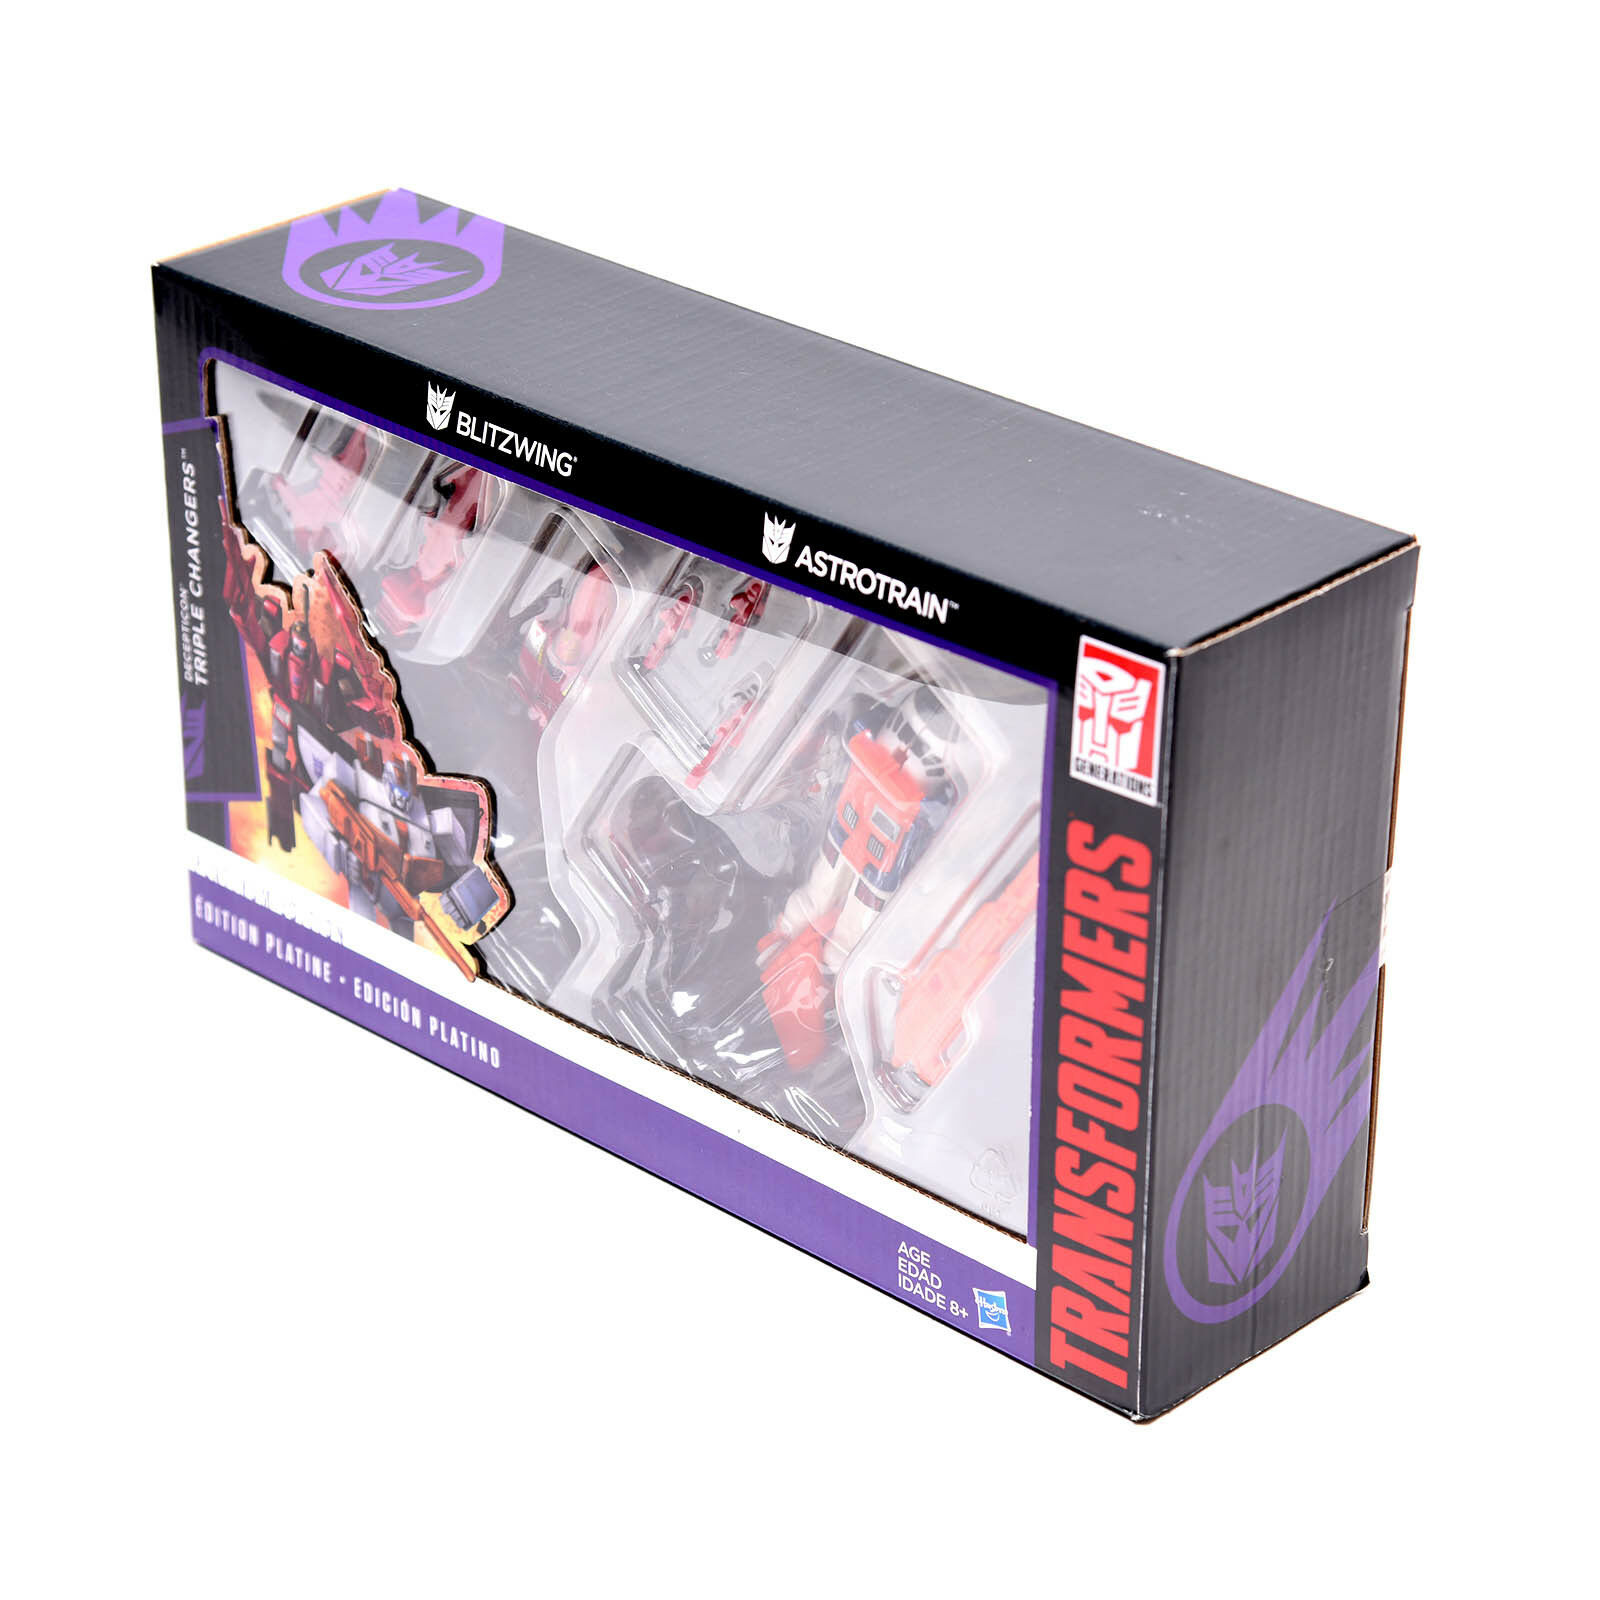 Transformers Hasbro G1 Reissue Platinum  Astrotrain Blitzwing Blitzwing Blitzwing Triple Changers ced22f